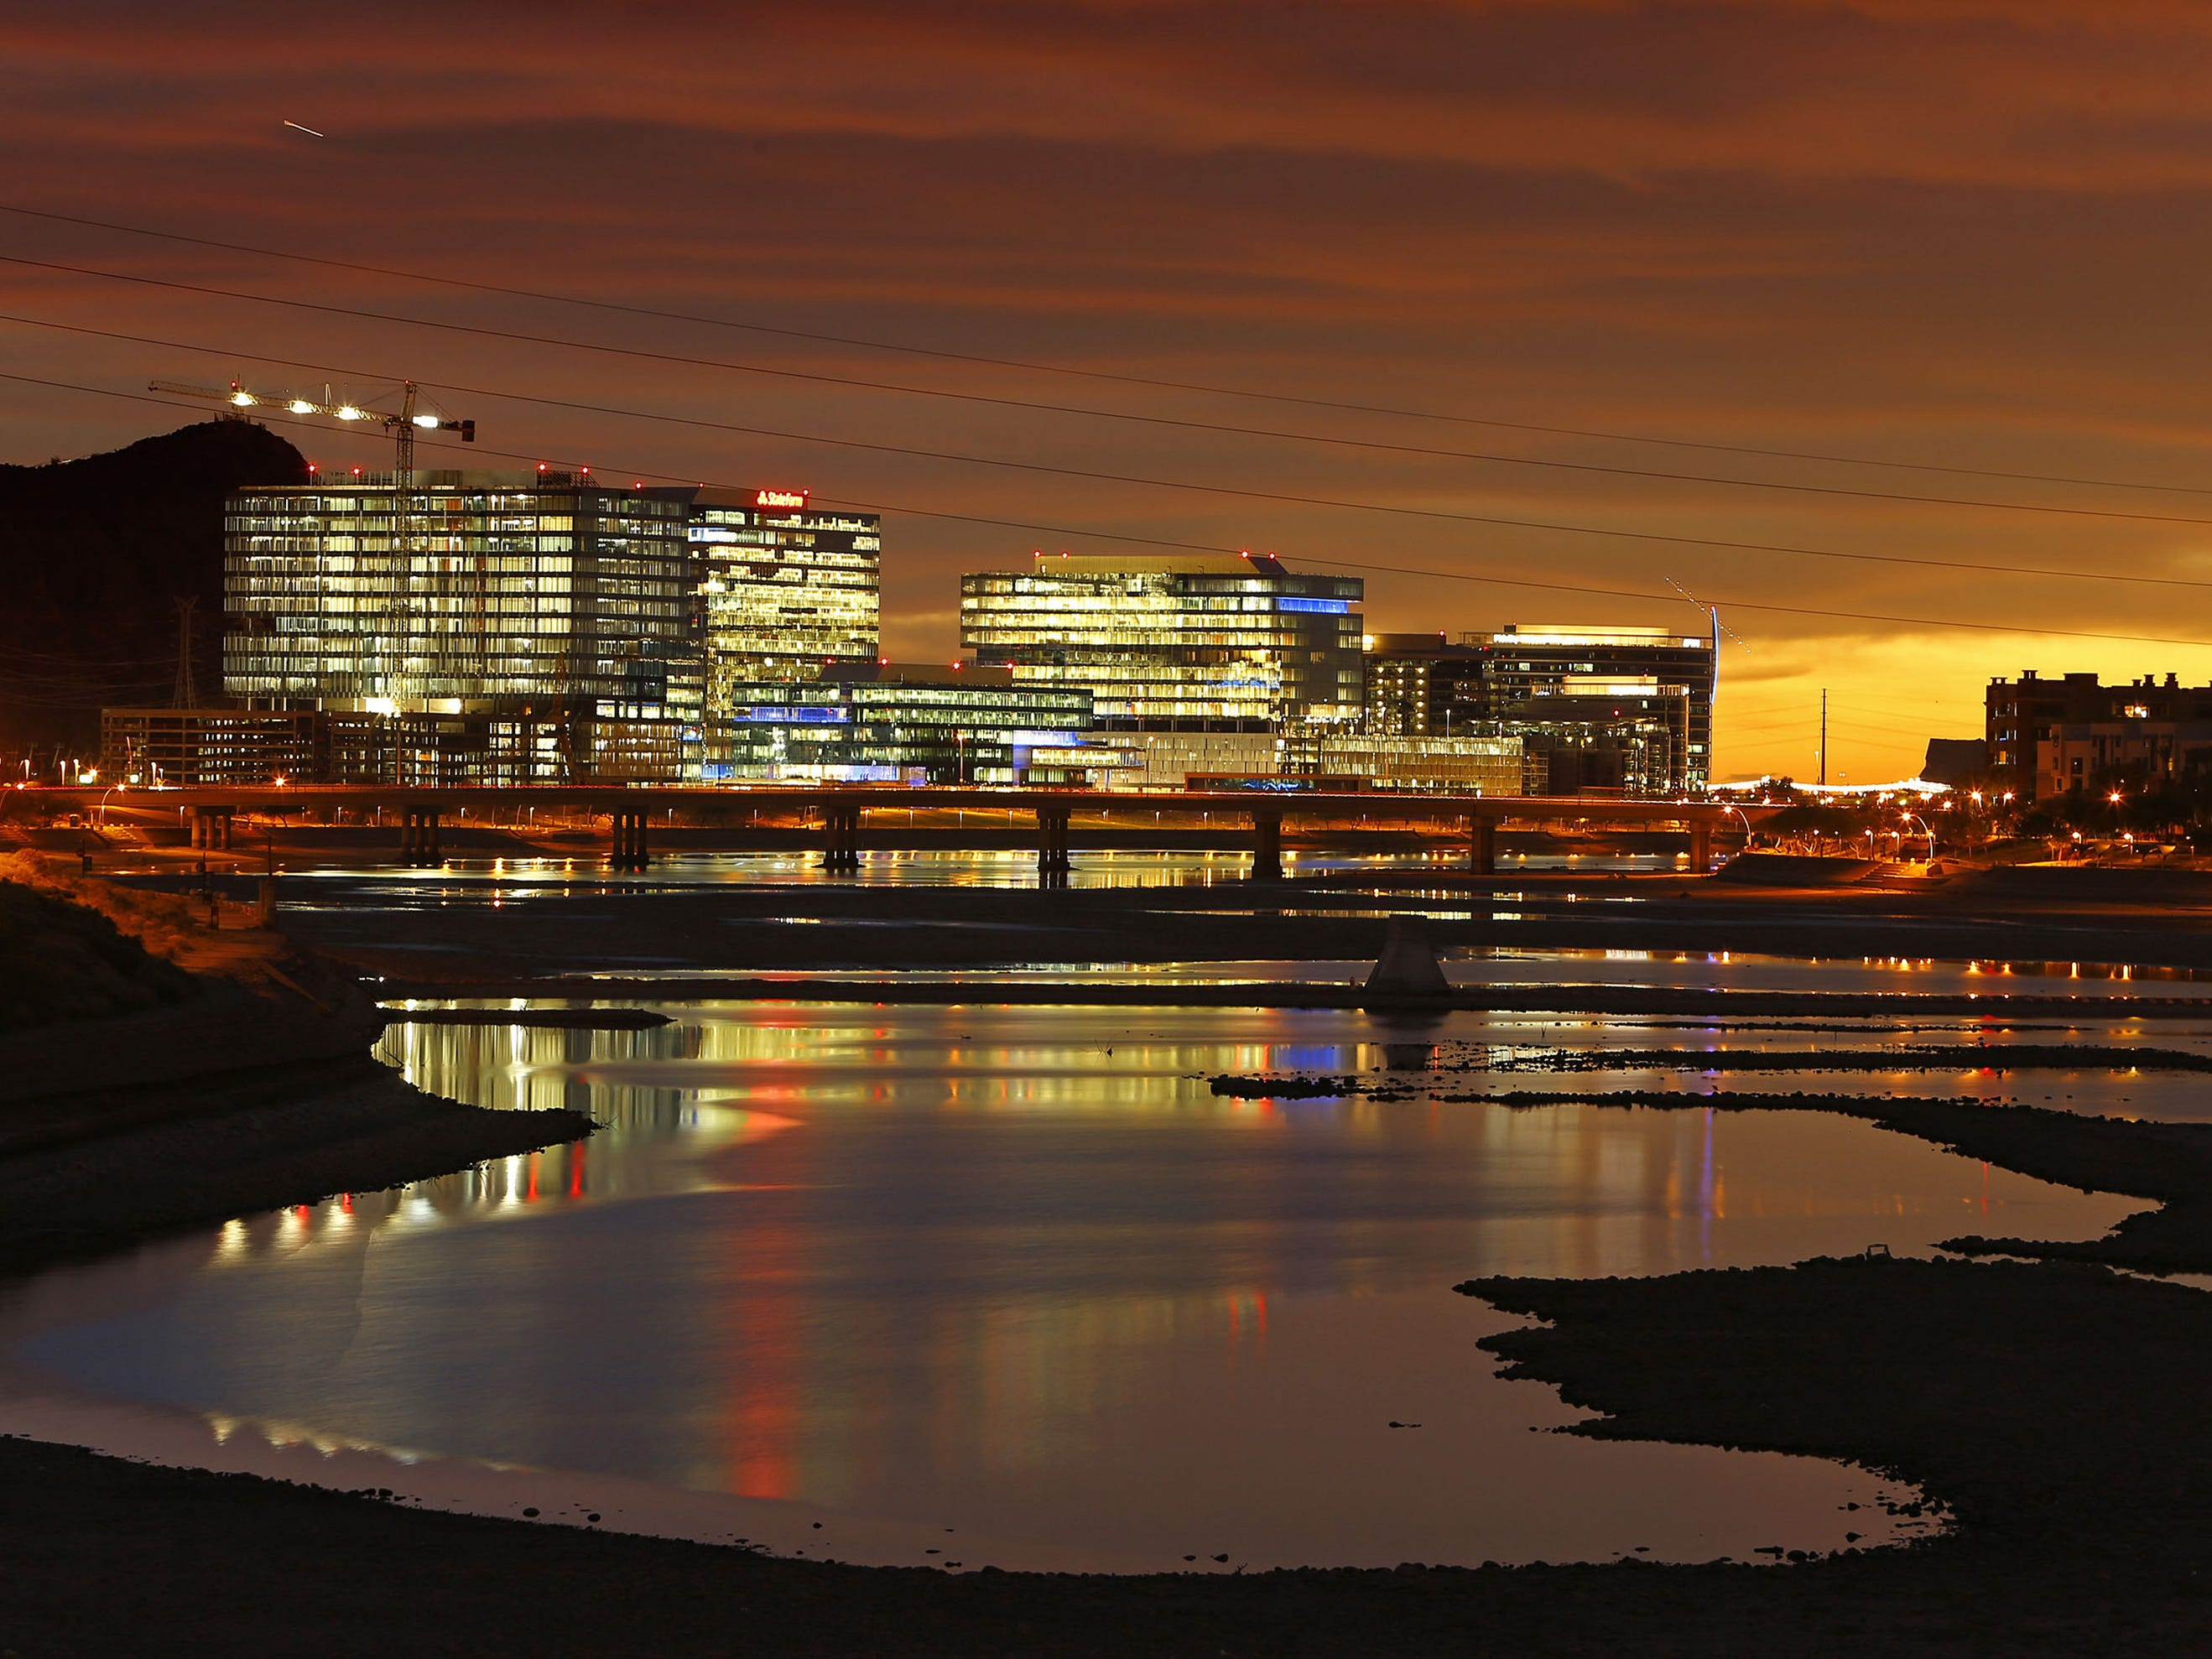 Tempe Town Lake reflects the hues of sunset and lights from high-rises.